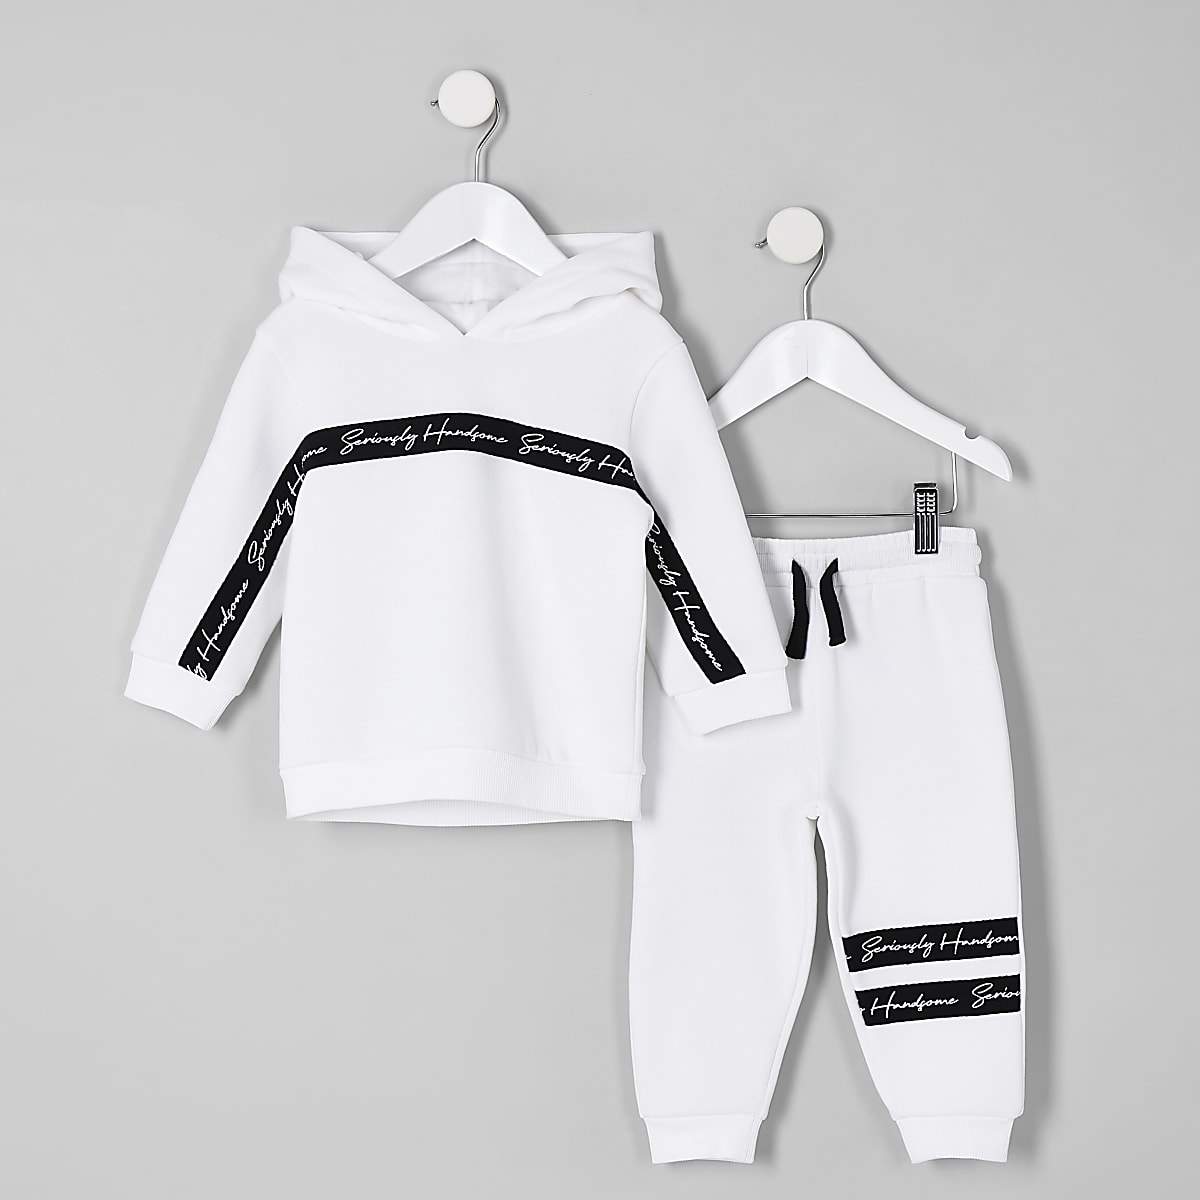 Mini boys white 'handsome' hoodie outfit